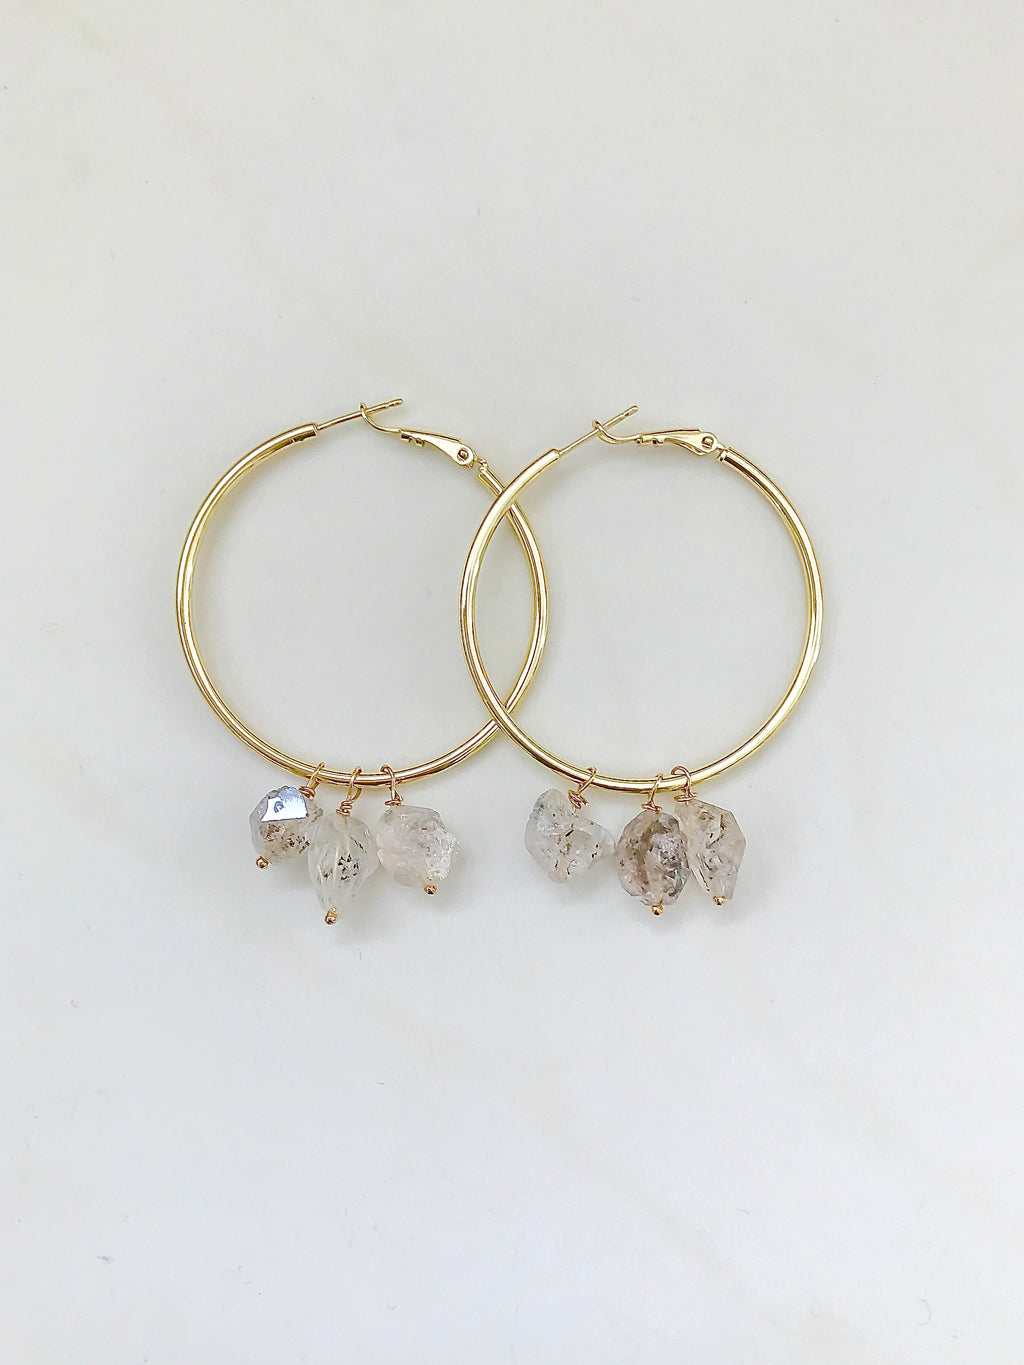 The Kristin Herkimer Hoop Earrings